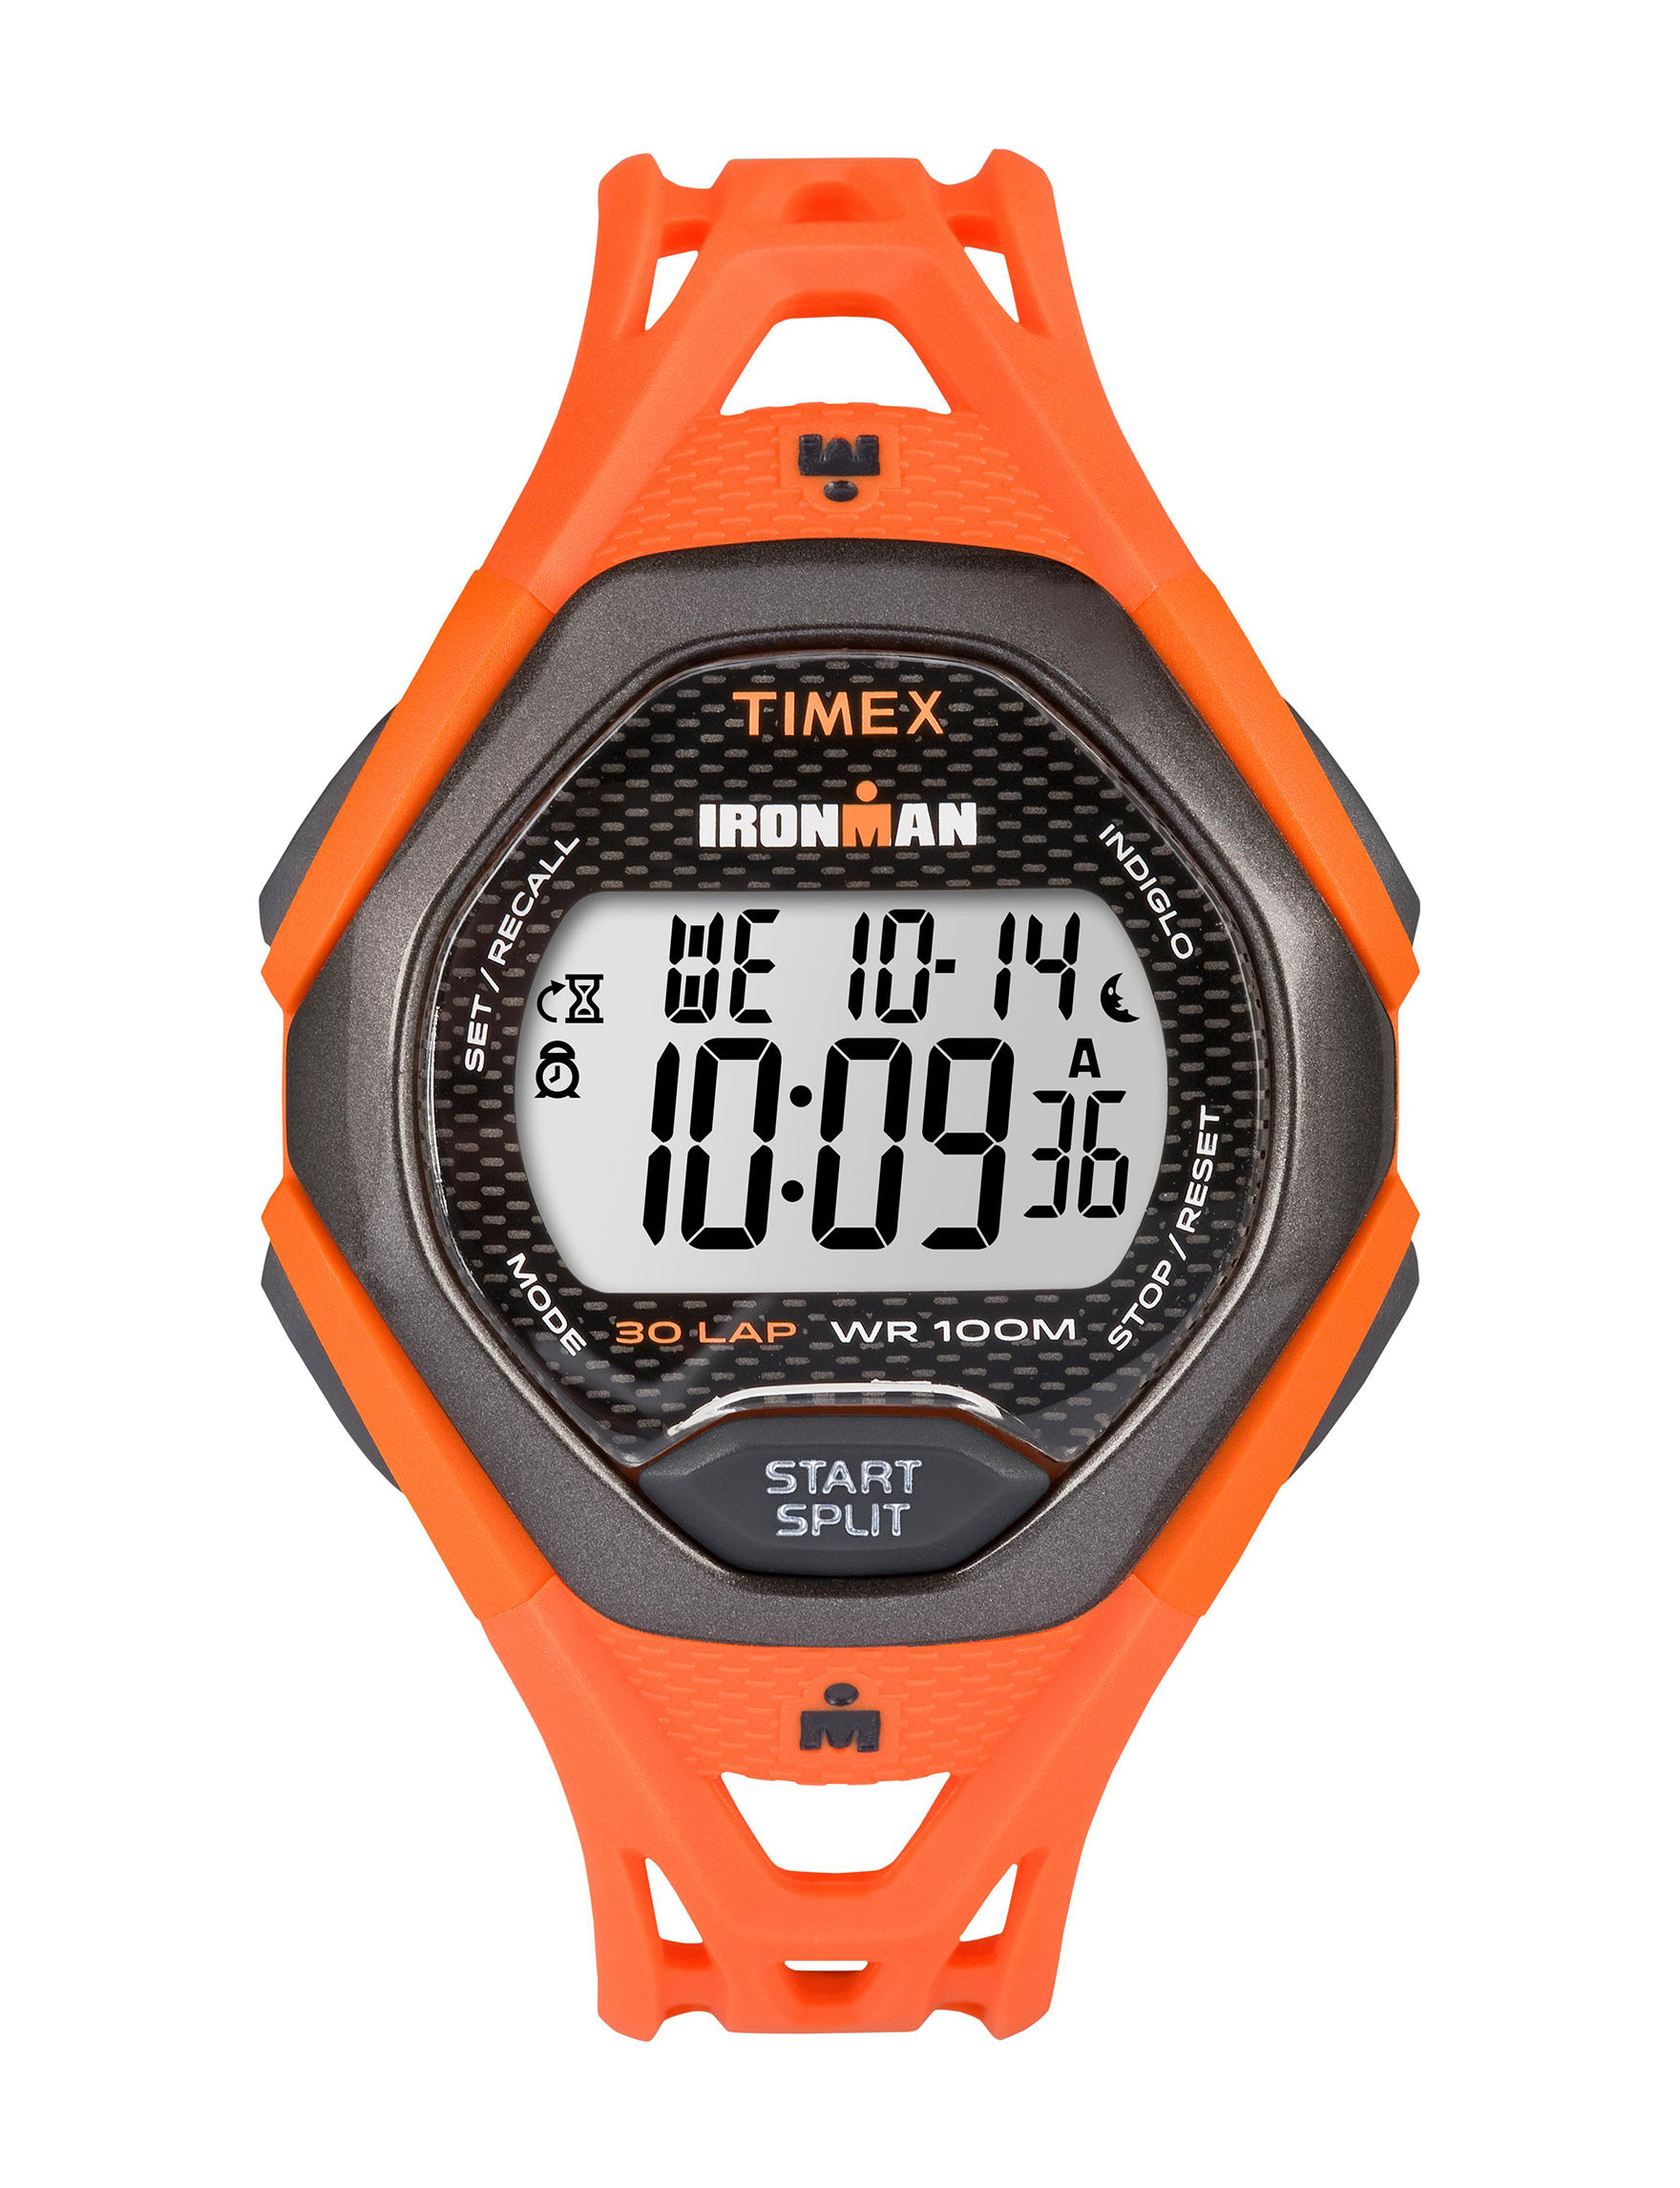 Timex Orange Sport Watches Fitness Tech & Tracking